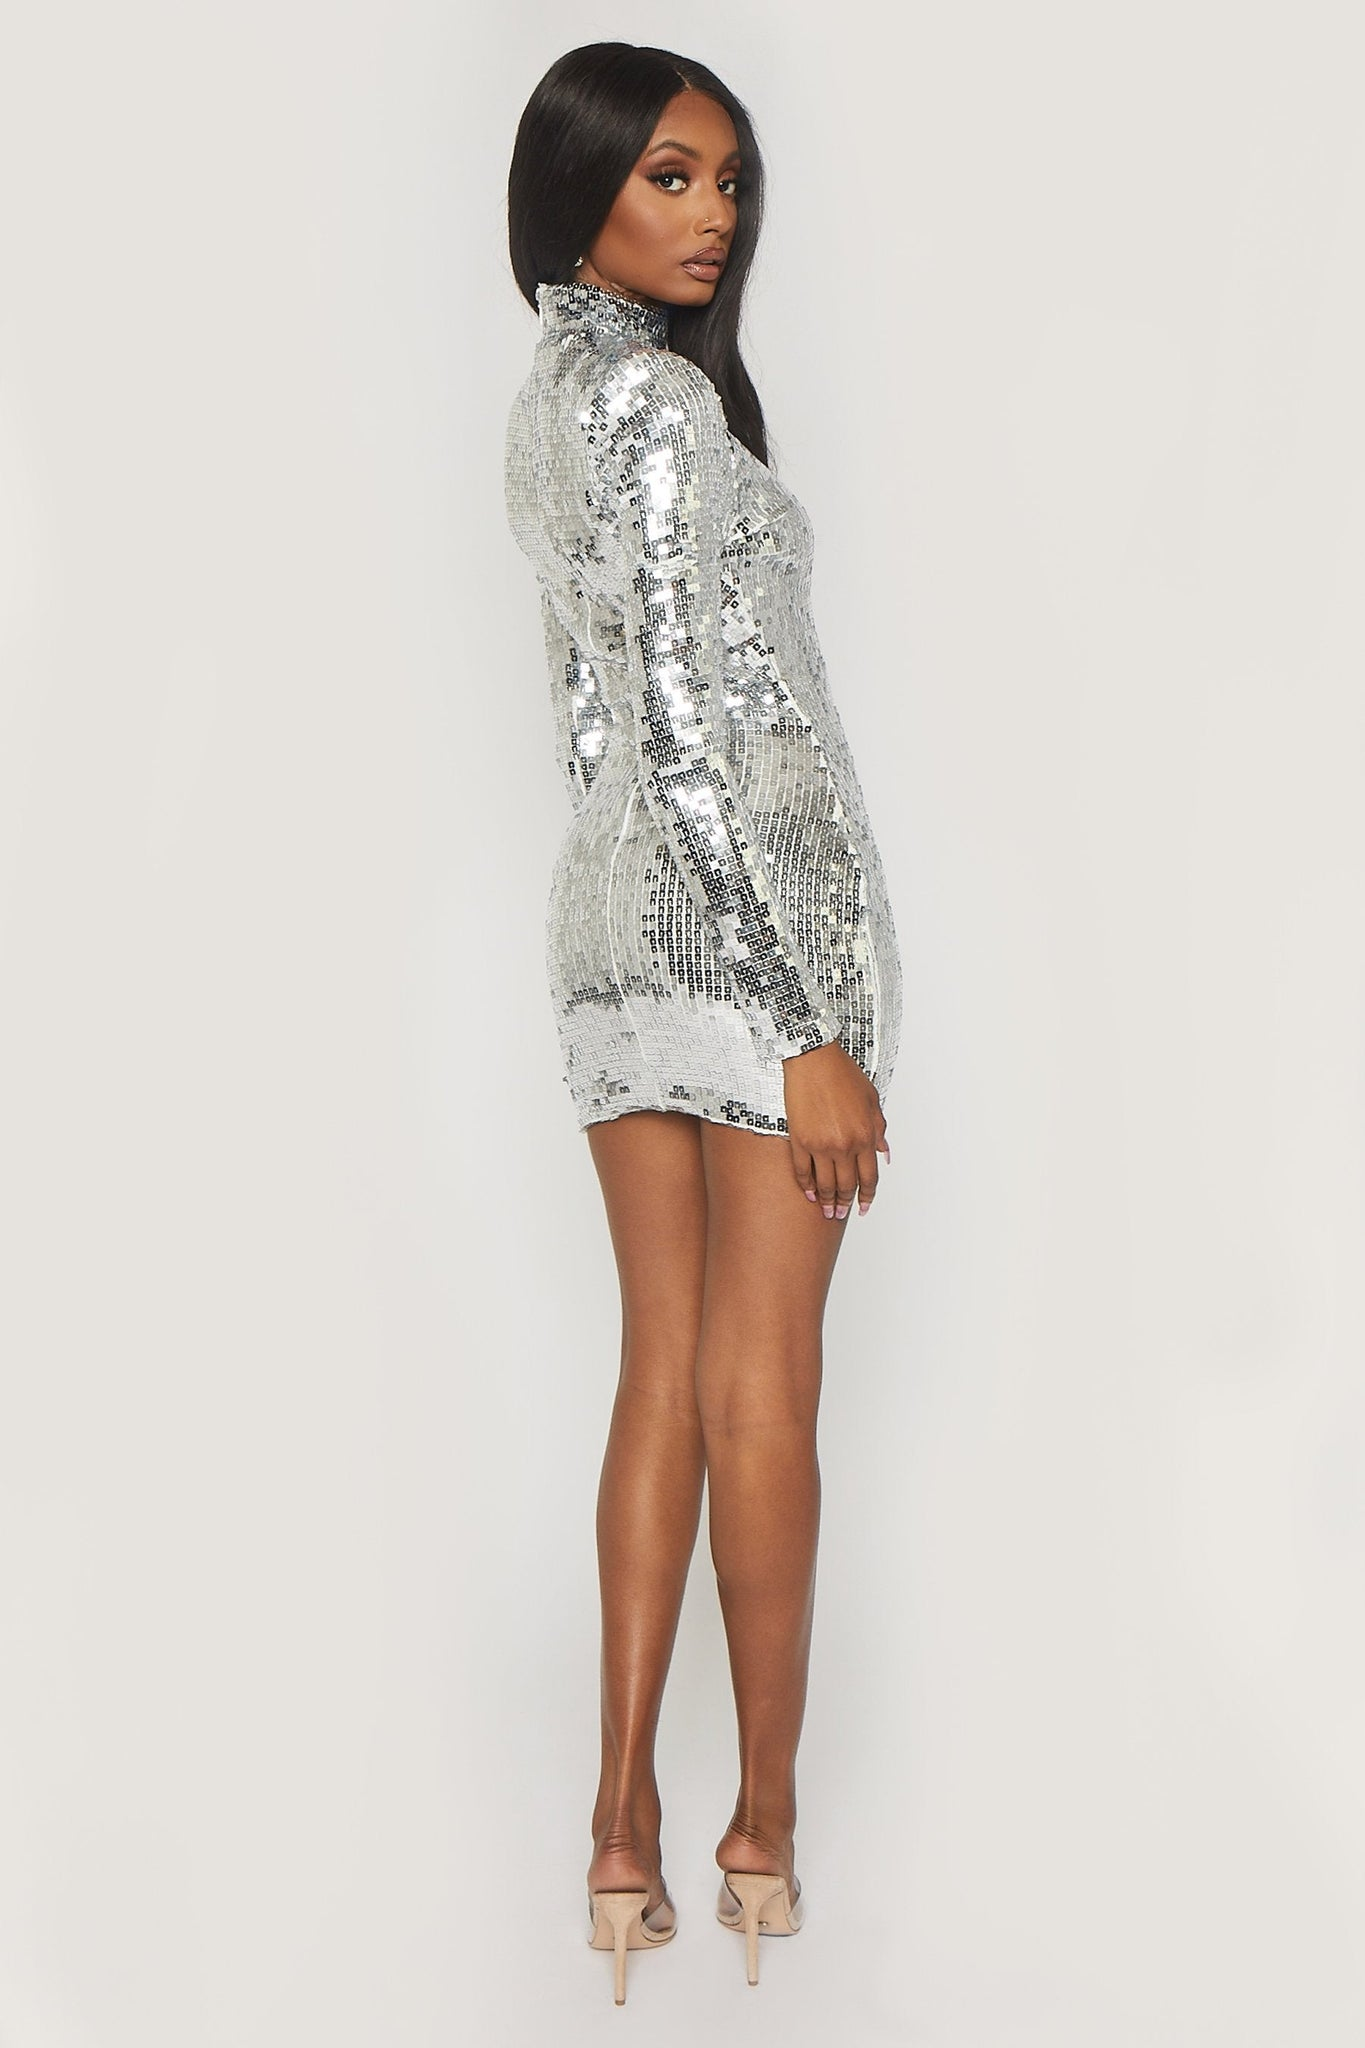 Hensley Mirror Sequin High Neck Long Sleeve Dress - Silver - MESHKI